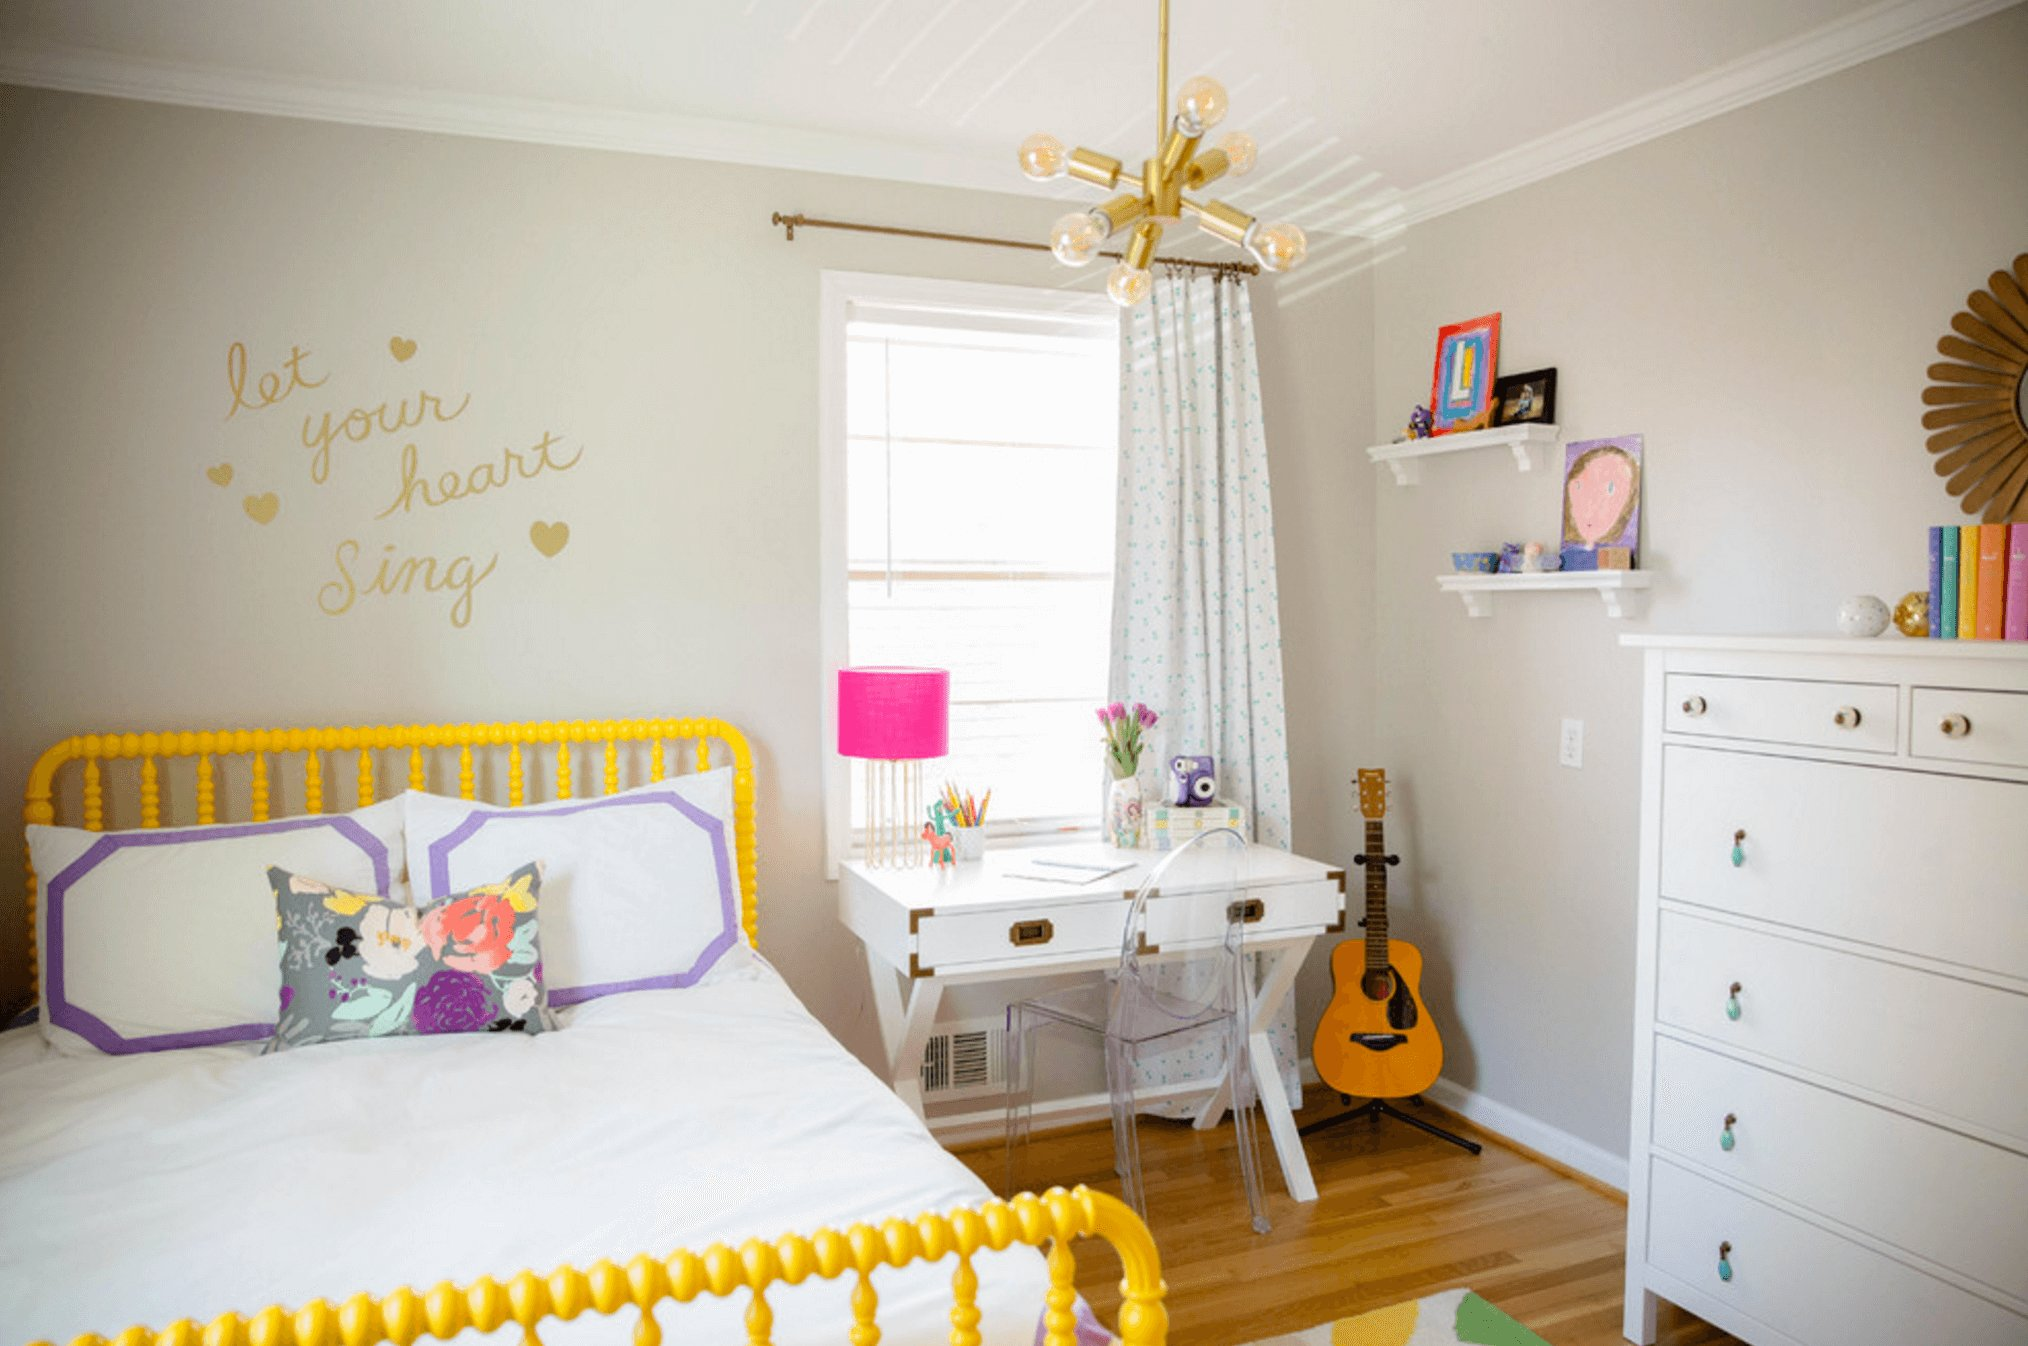 Best 28 Ideas For Adding Color To A Kids Room Freshome Com® With Pictures